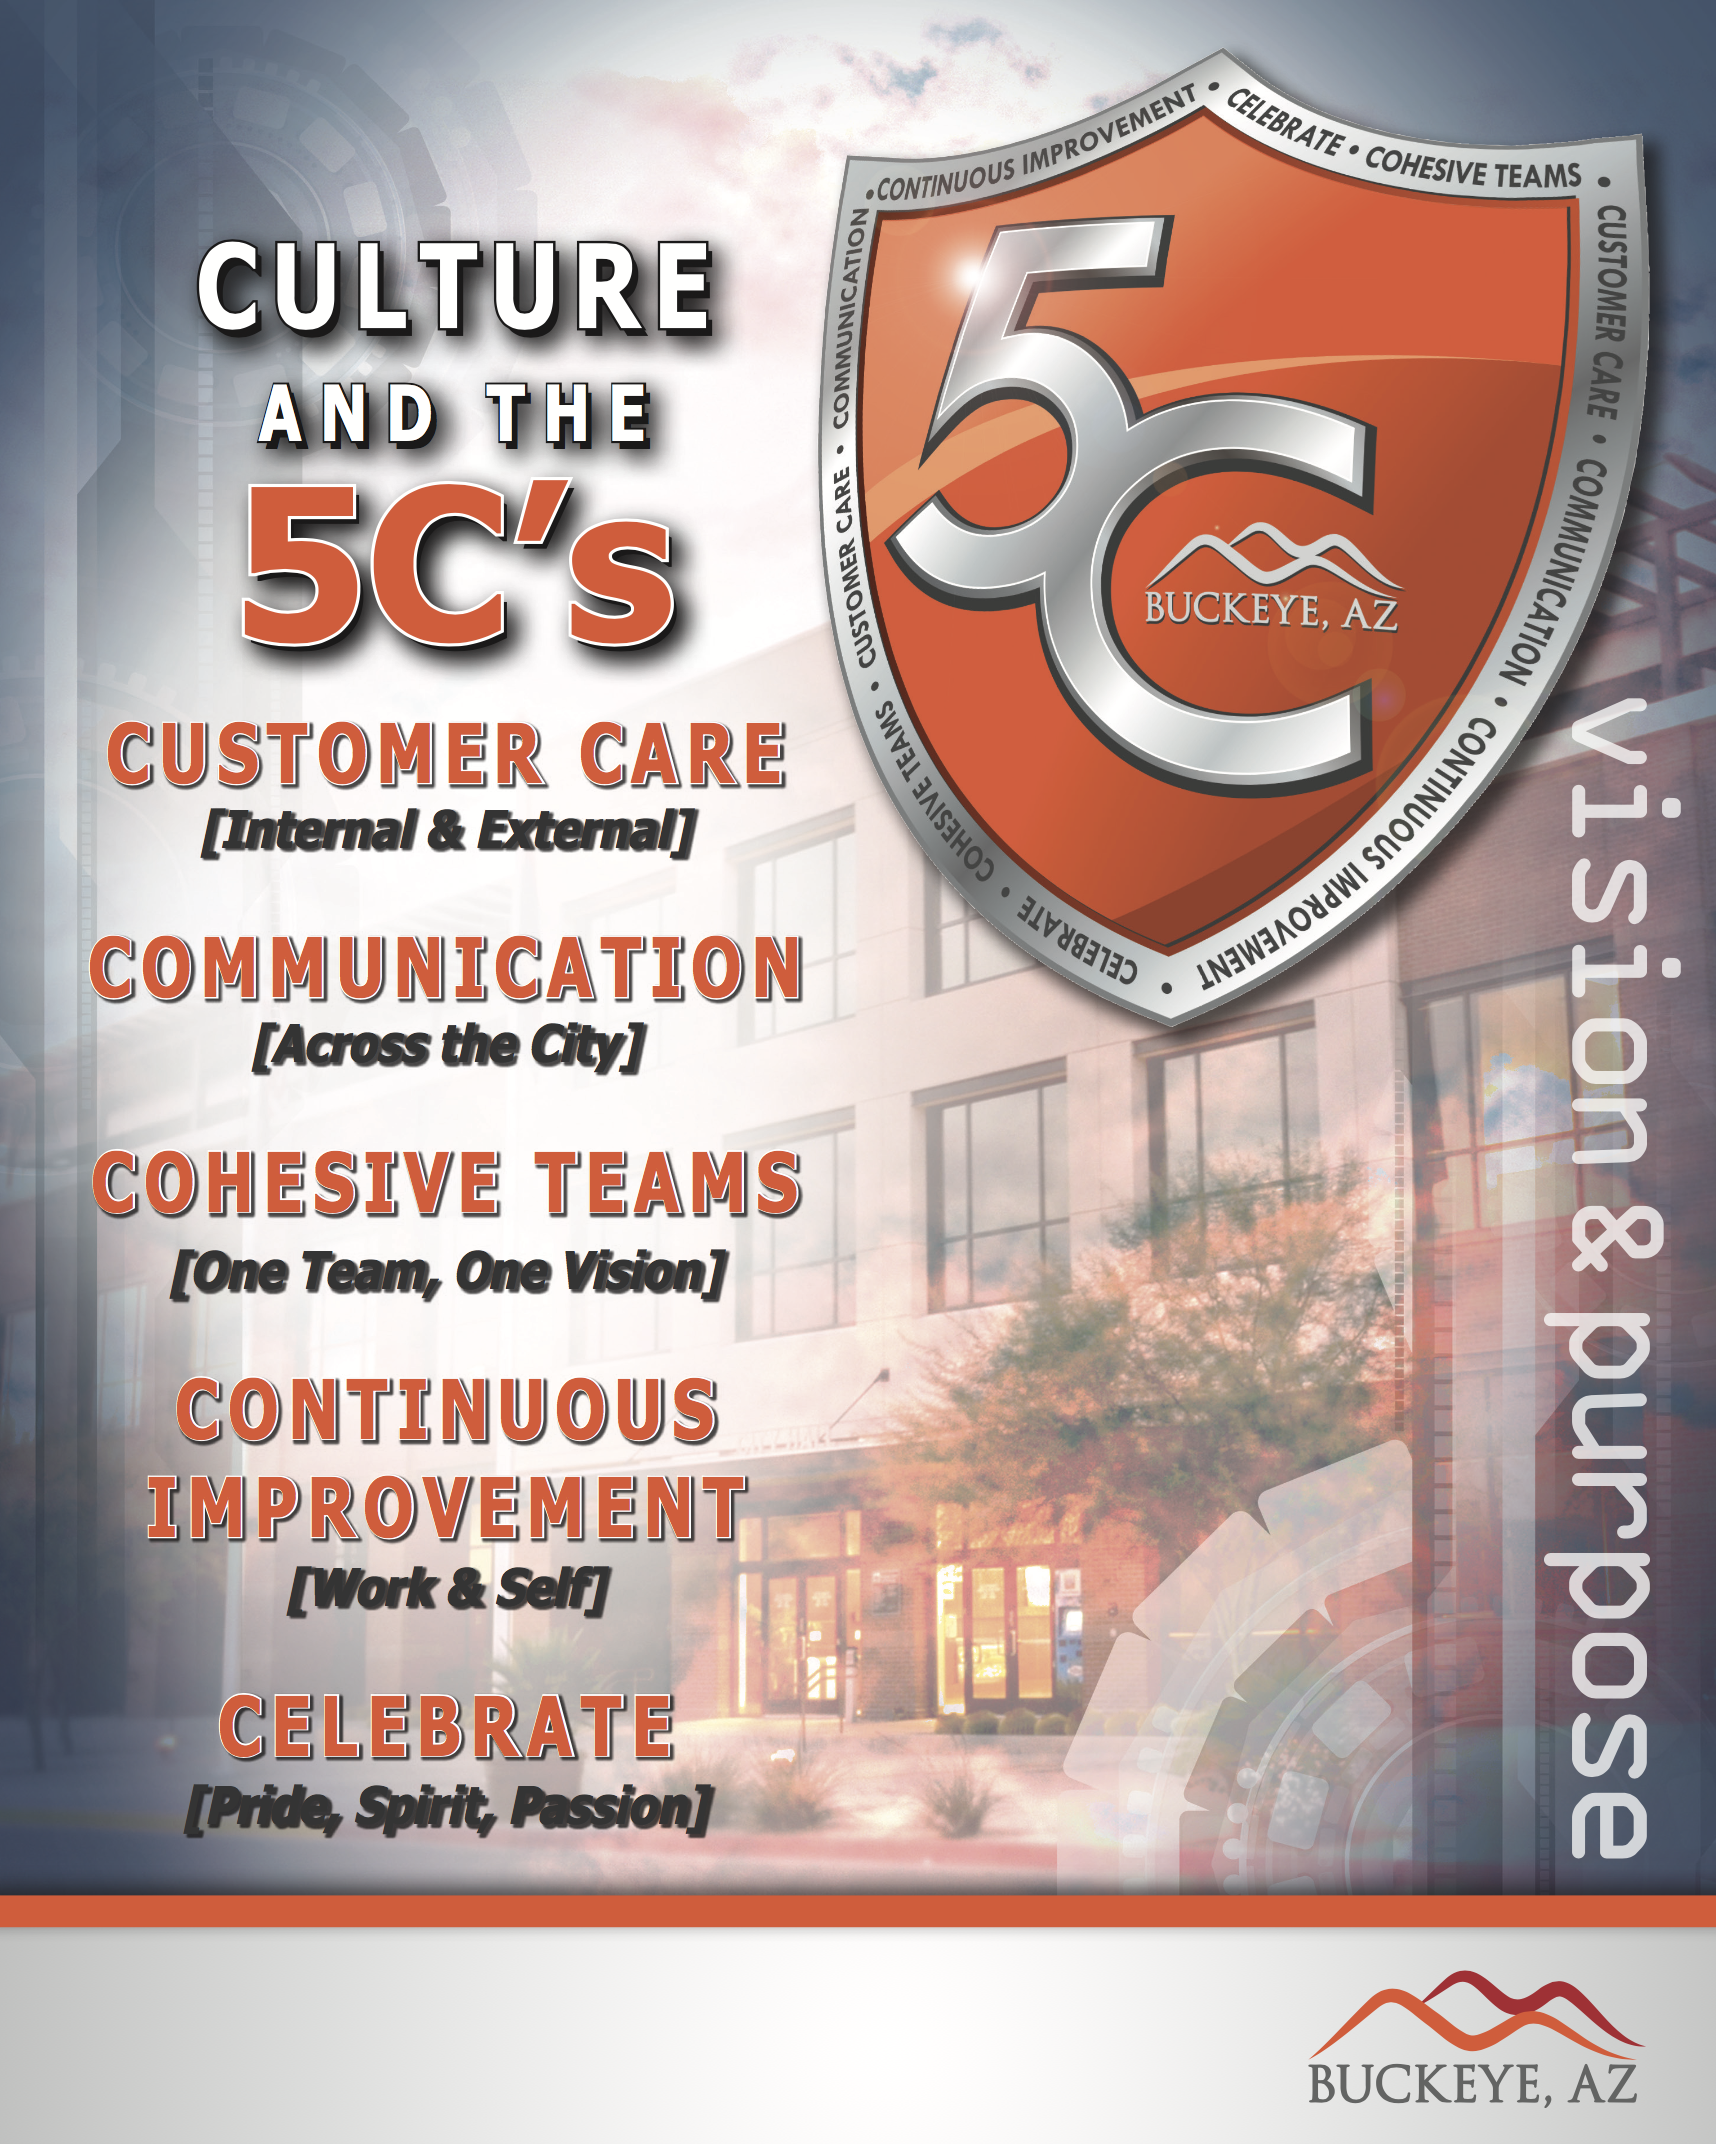 culture and the 5 Cs poster